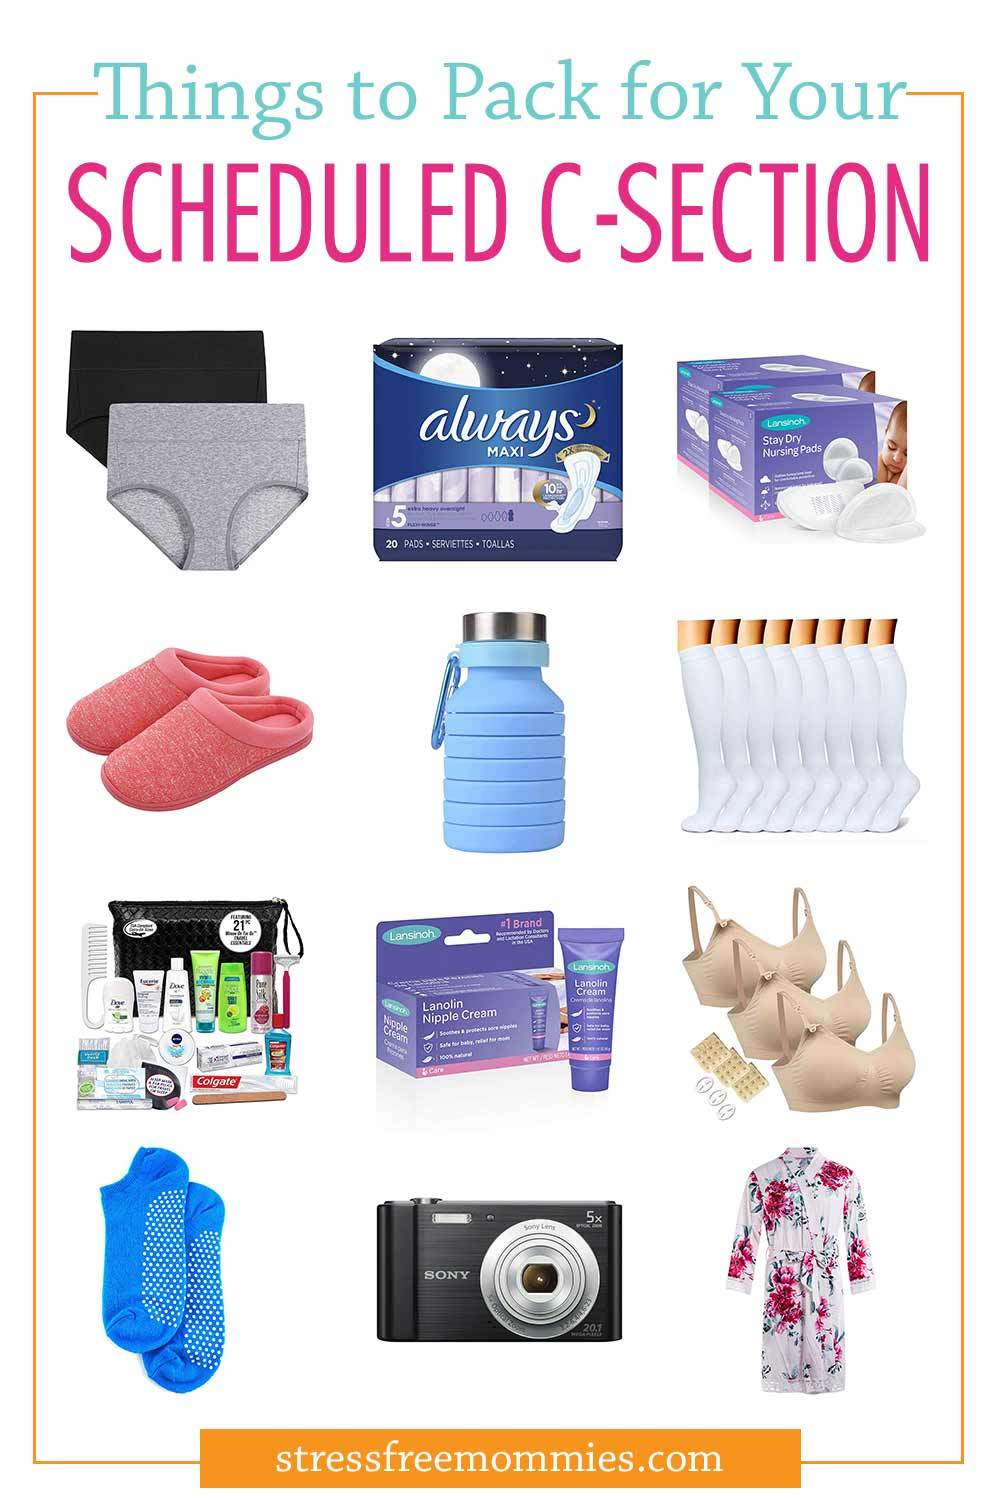 20 things you must pack in your hospital bag for a scheduled c-section